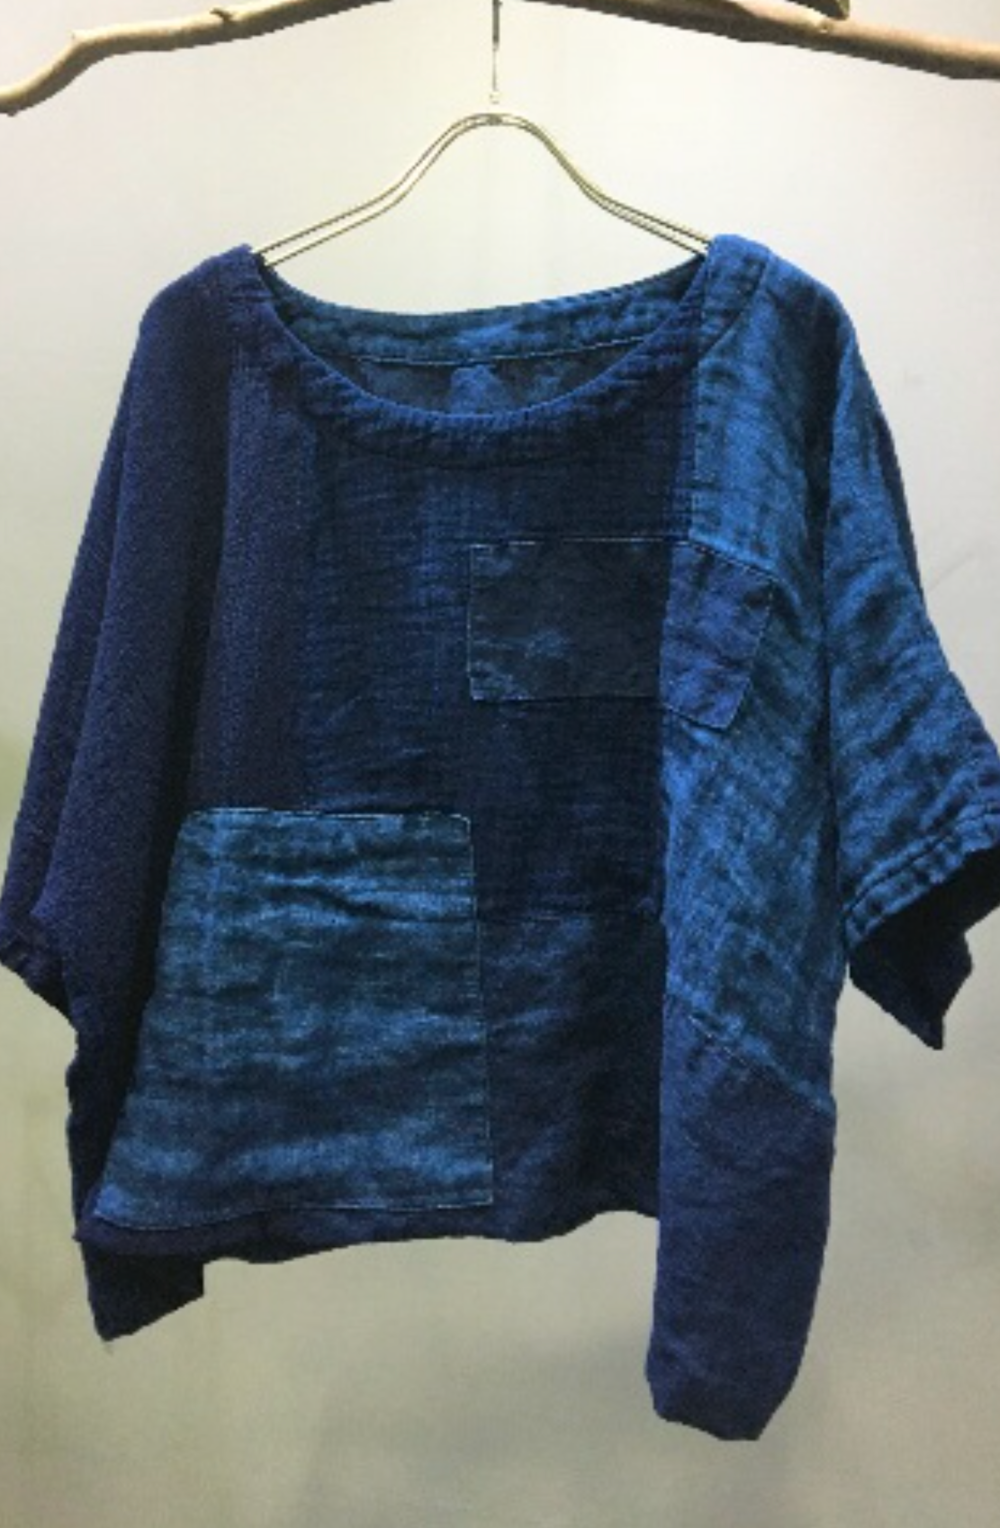 Natural Indigo Dye Blouse - Hand Dye with Aizome